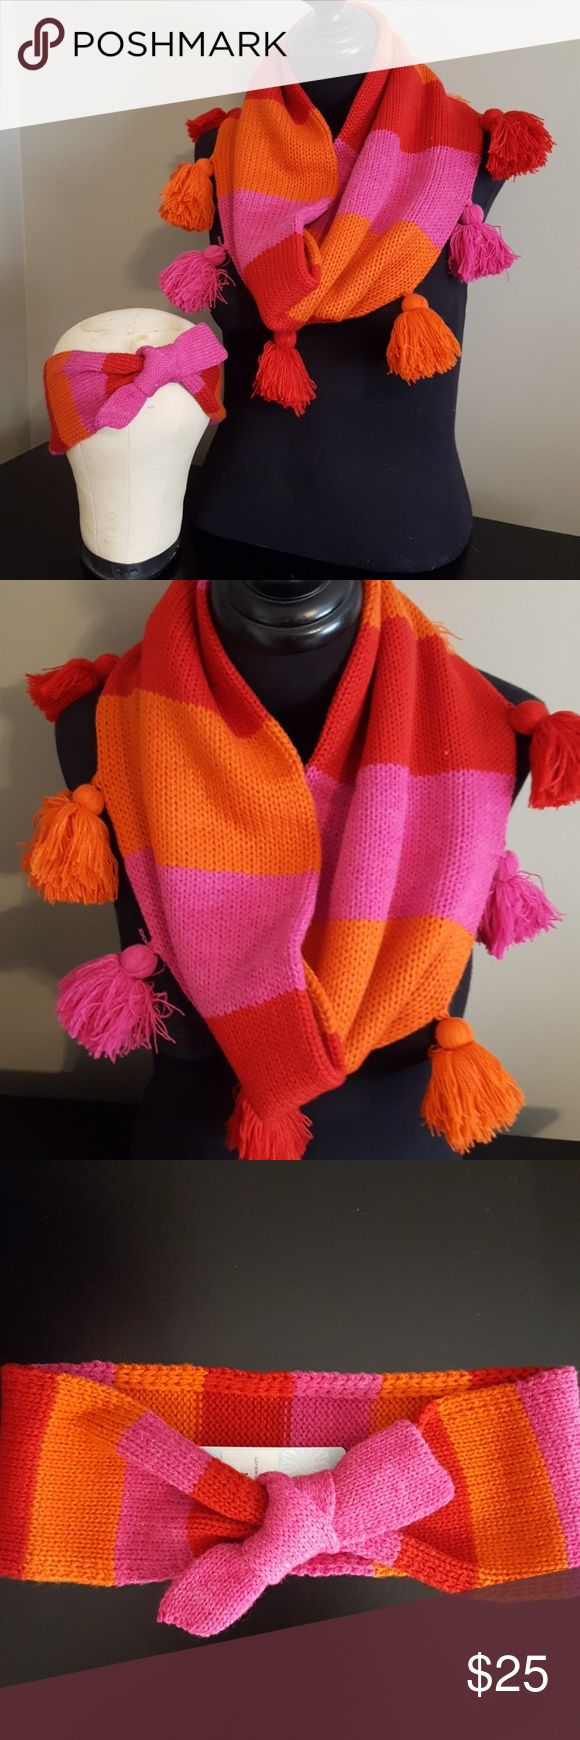 "Cozy Tasseled Infinity Scarf and Ear Band Bundle Red, Orange, and Pink Striped Infinity and Ear Band will keep you colorful and warm. The scarf has tassels and the ear band has a decorative knot. The ear band is one continuous loop so it stretches on. The ear band is 10.5"" flat and the scarf is about 33"" around. Mud Pie Accessories Scarves & Wraps"